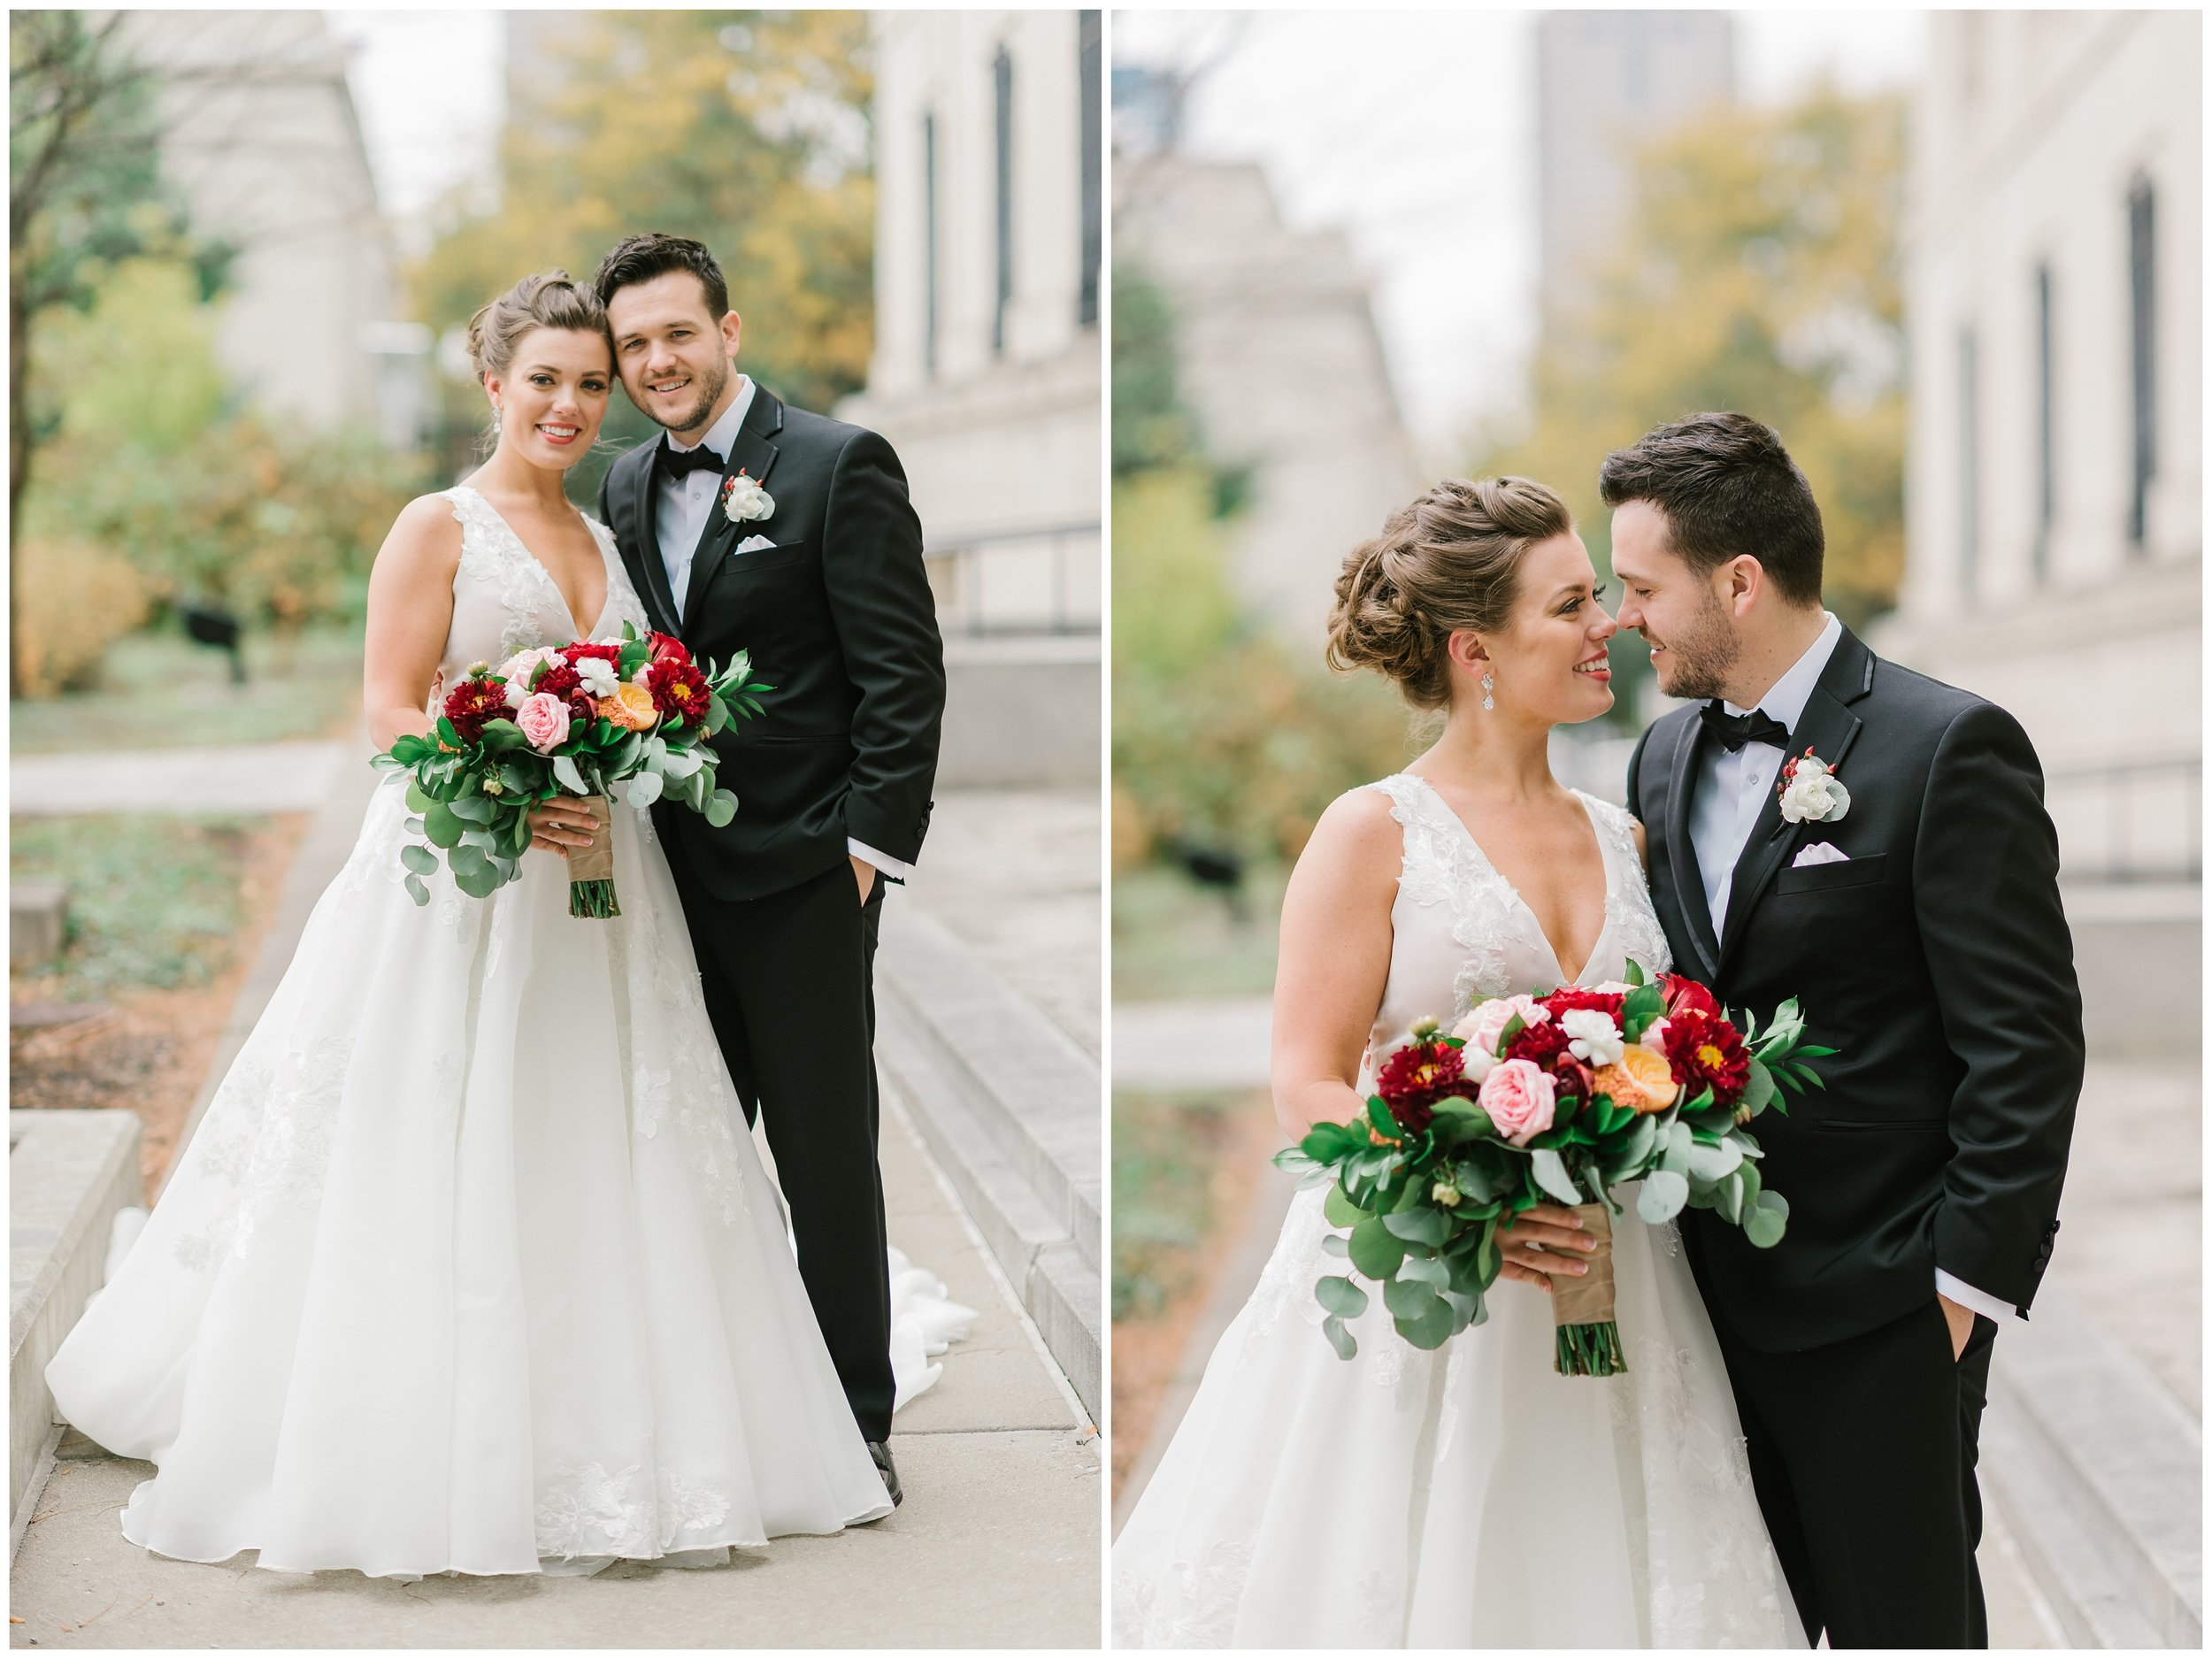 Rebecca_Shehorn_Photography_Indianapolis_Wedding_Photographer_7709.jpg